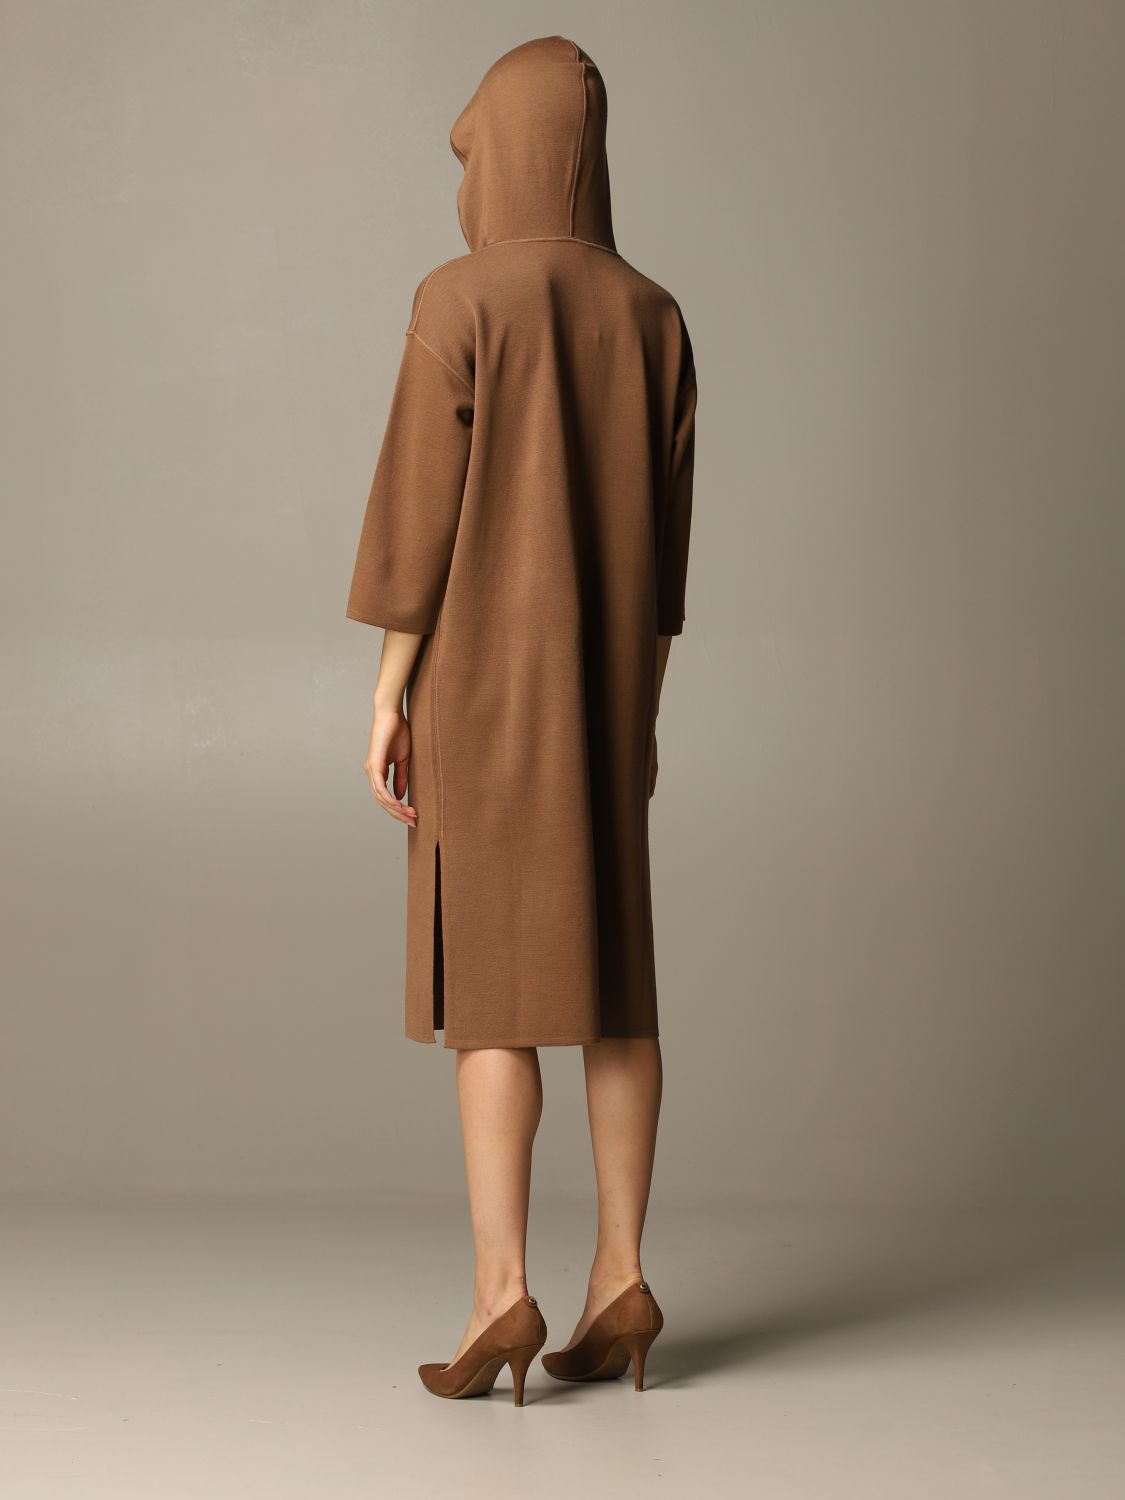 Dress Max Mara: Dress women Max Mara tobacco 2